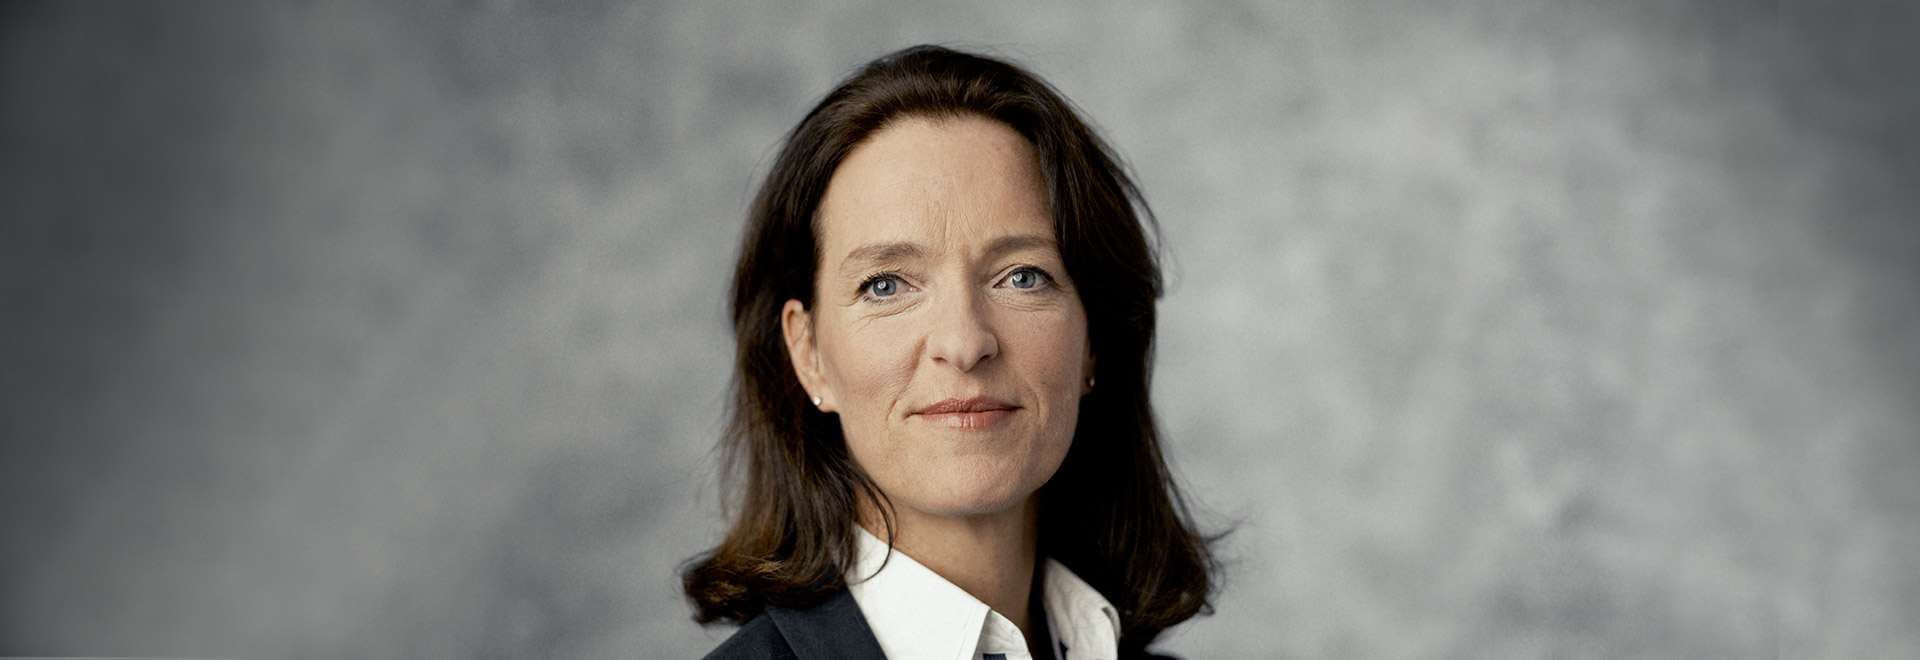 Esther Veltman